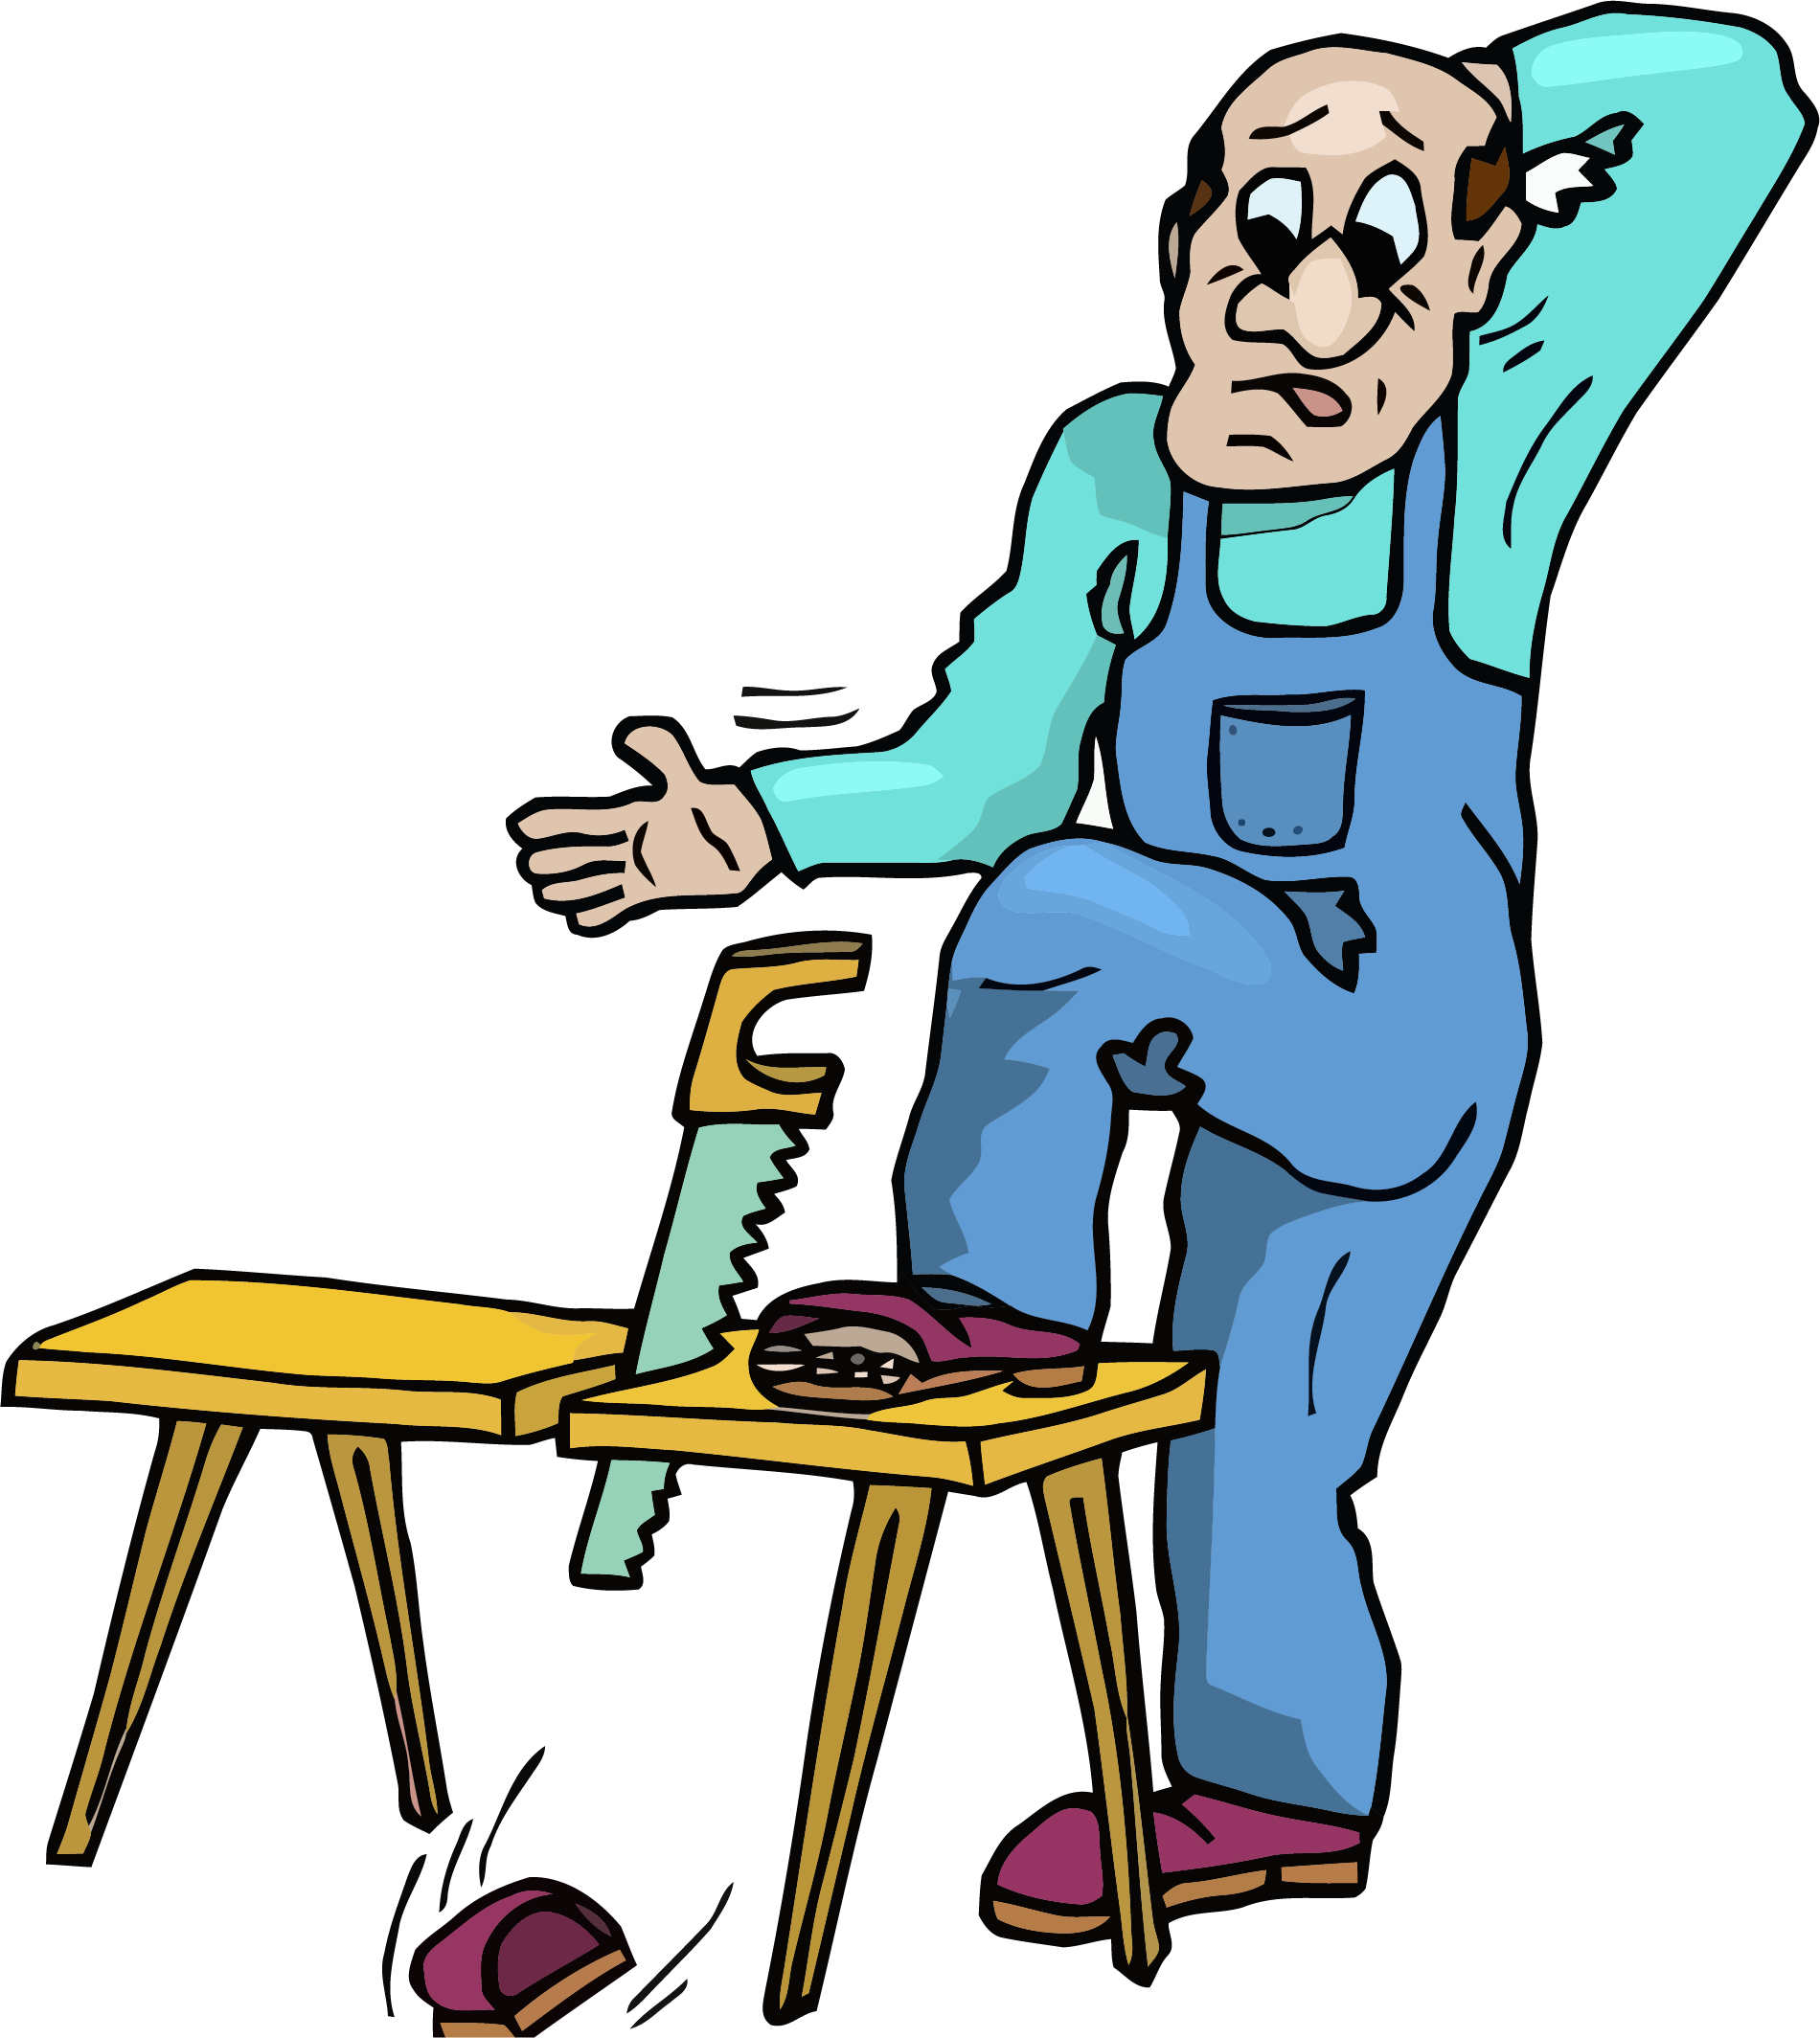 carpenter drawing clip art